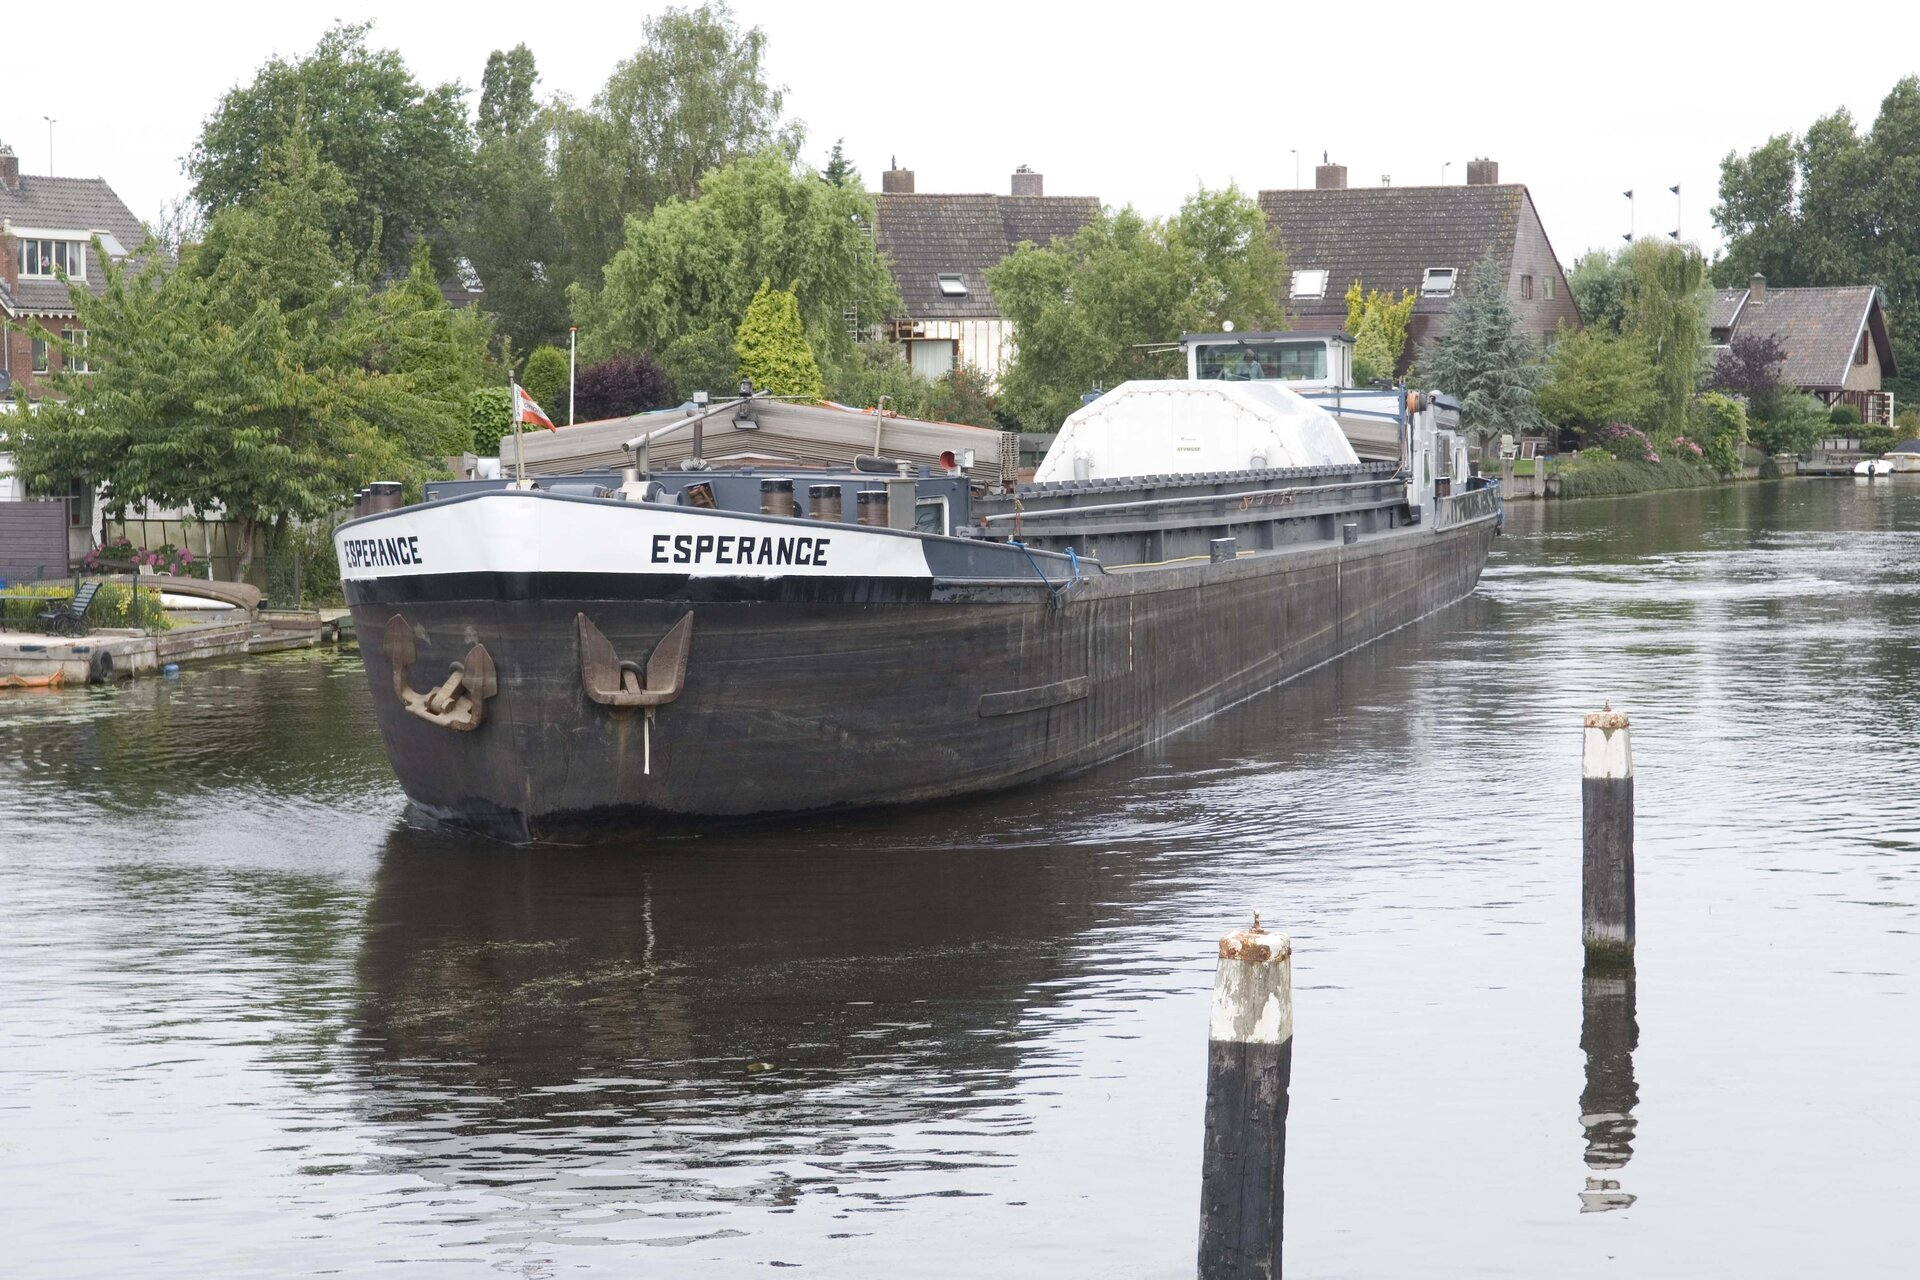 Canal barge carrying ATV's Integrated Cargo Carrier passes through Leiden